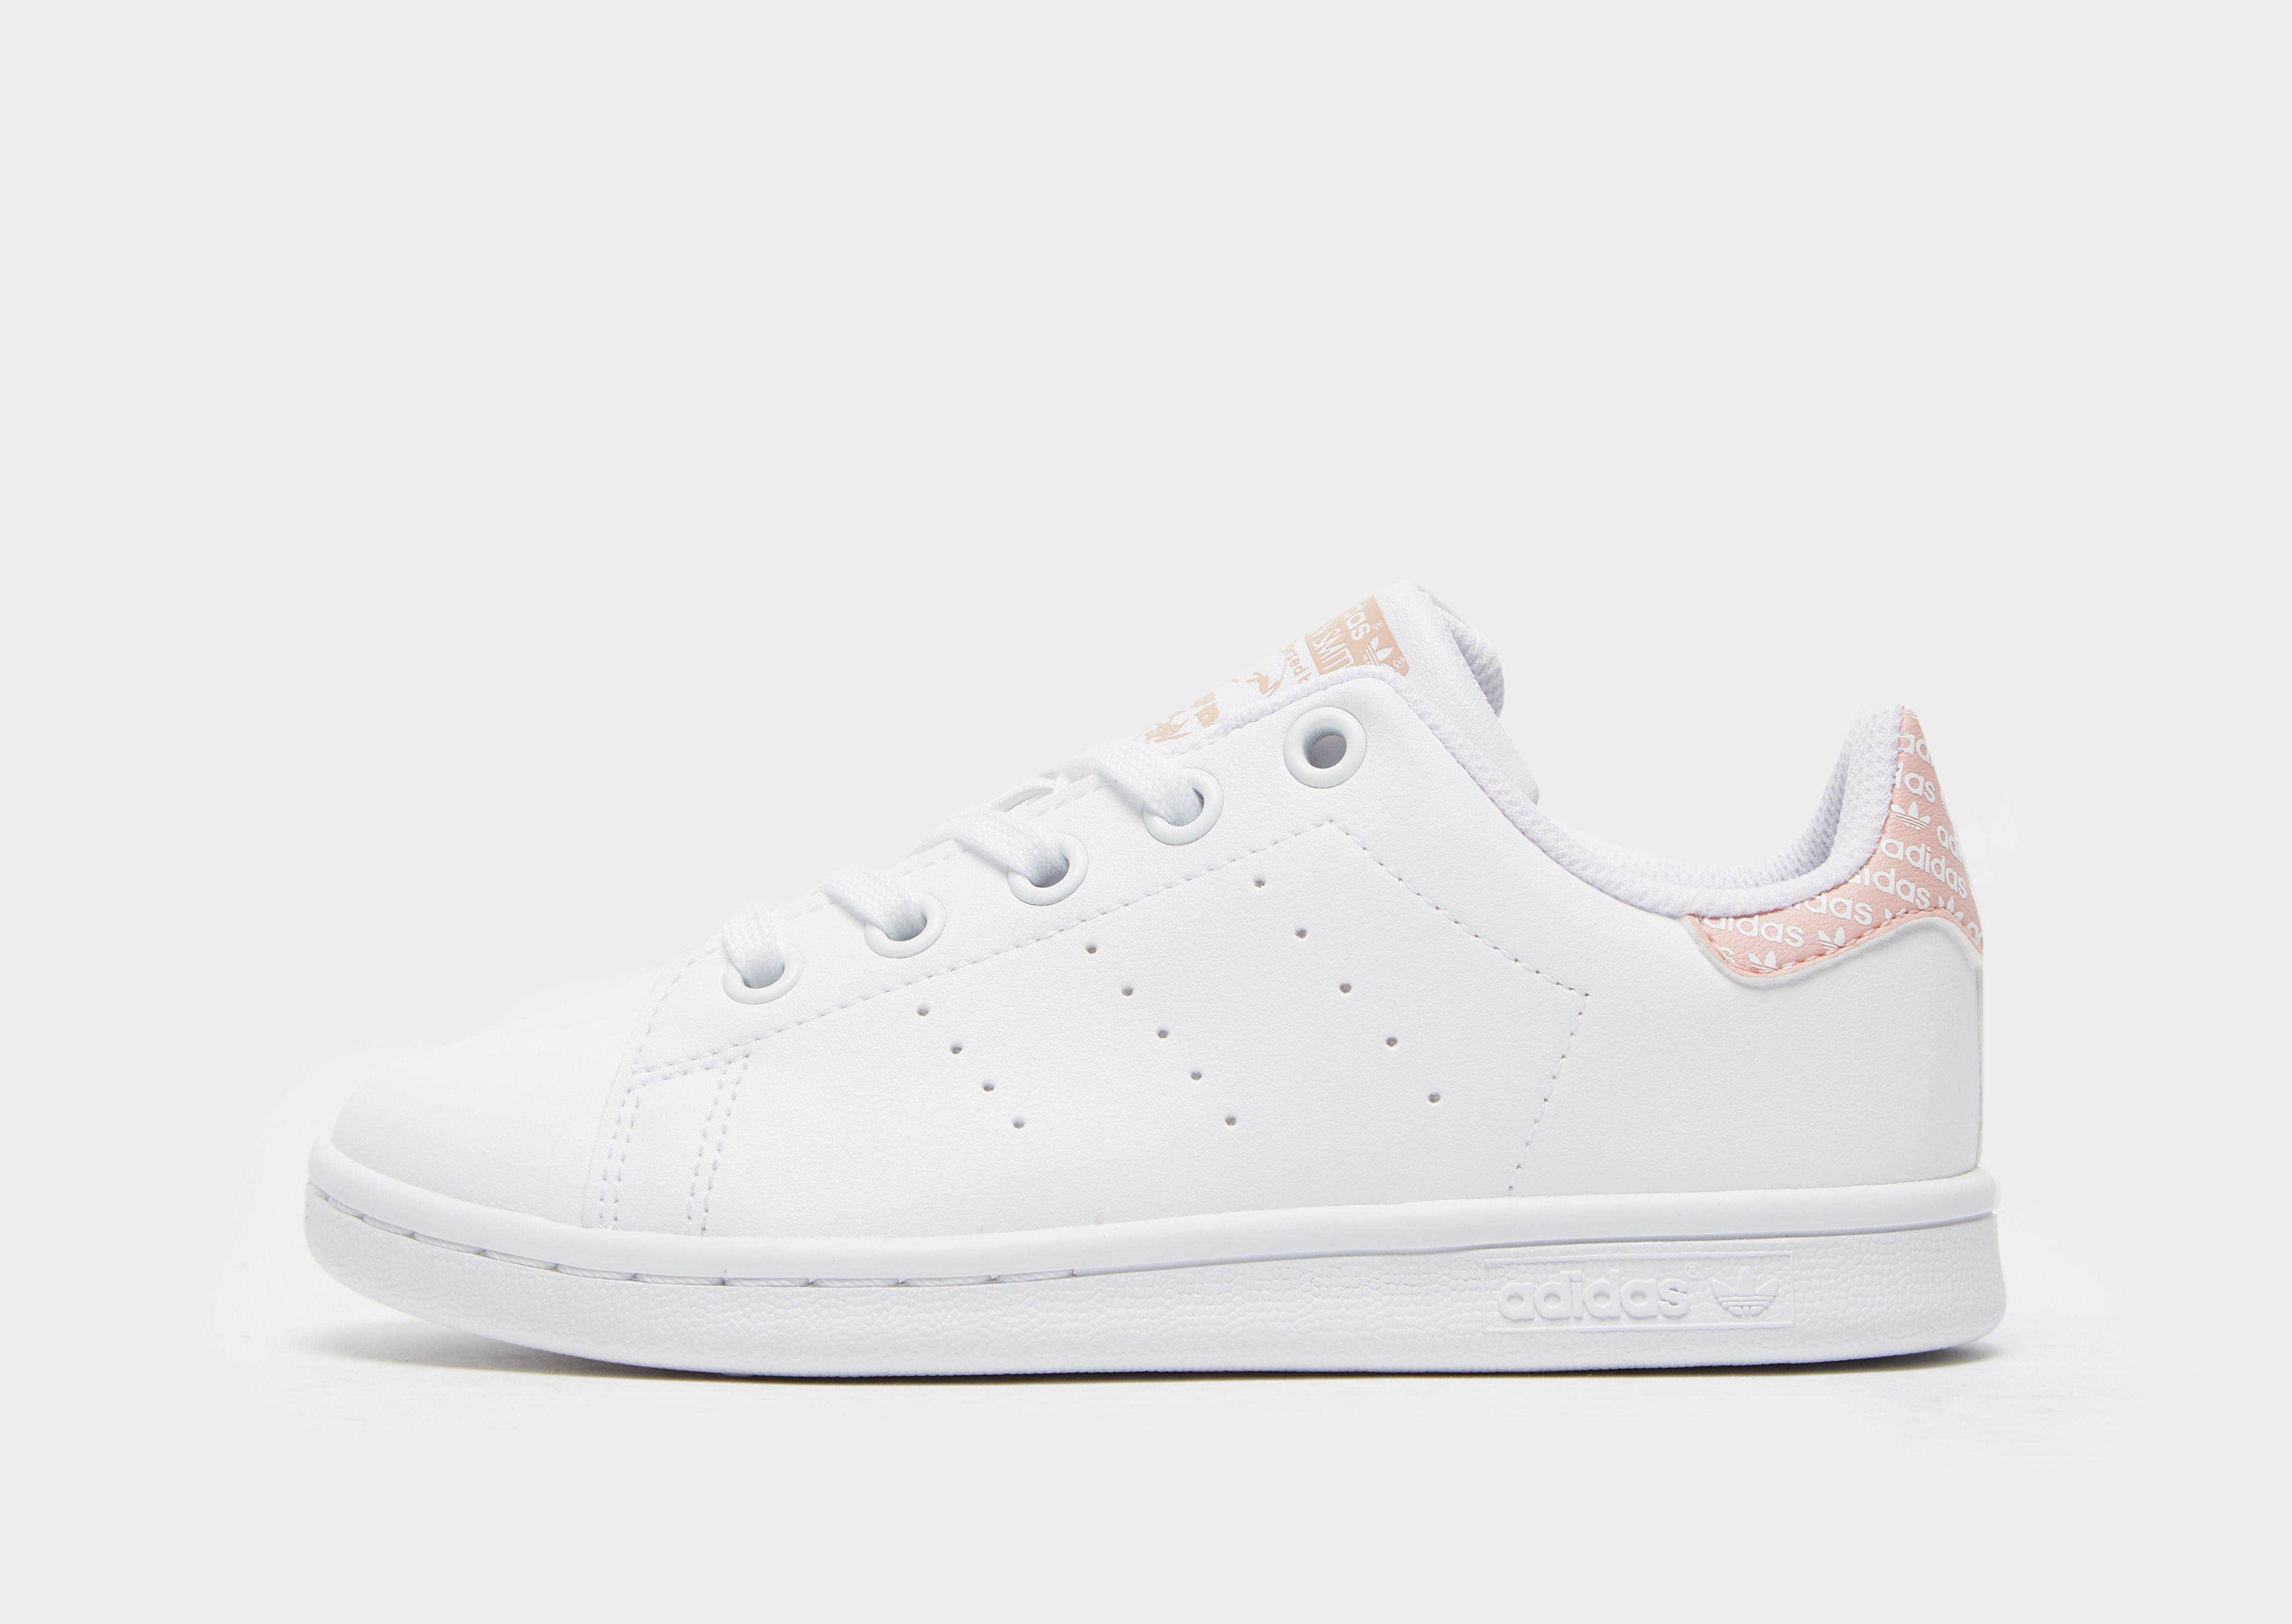 Details about New adidas Originals Kids' Stan Smith Trainers